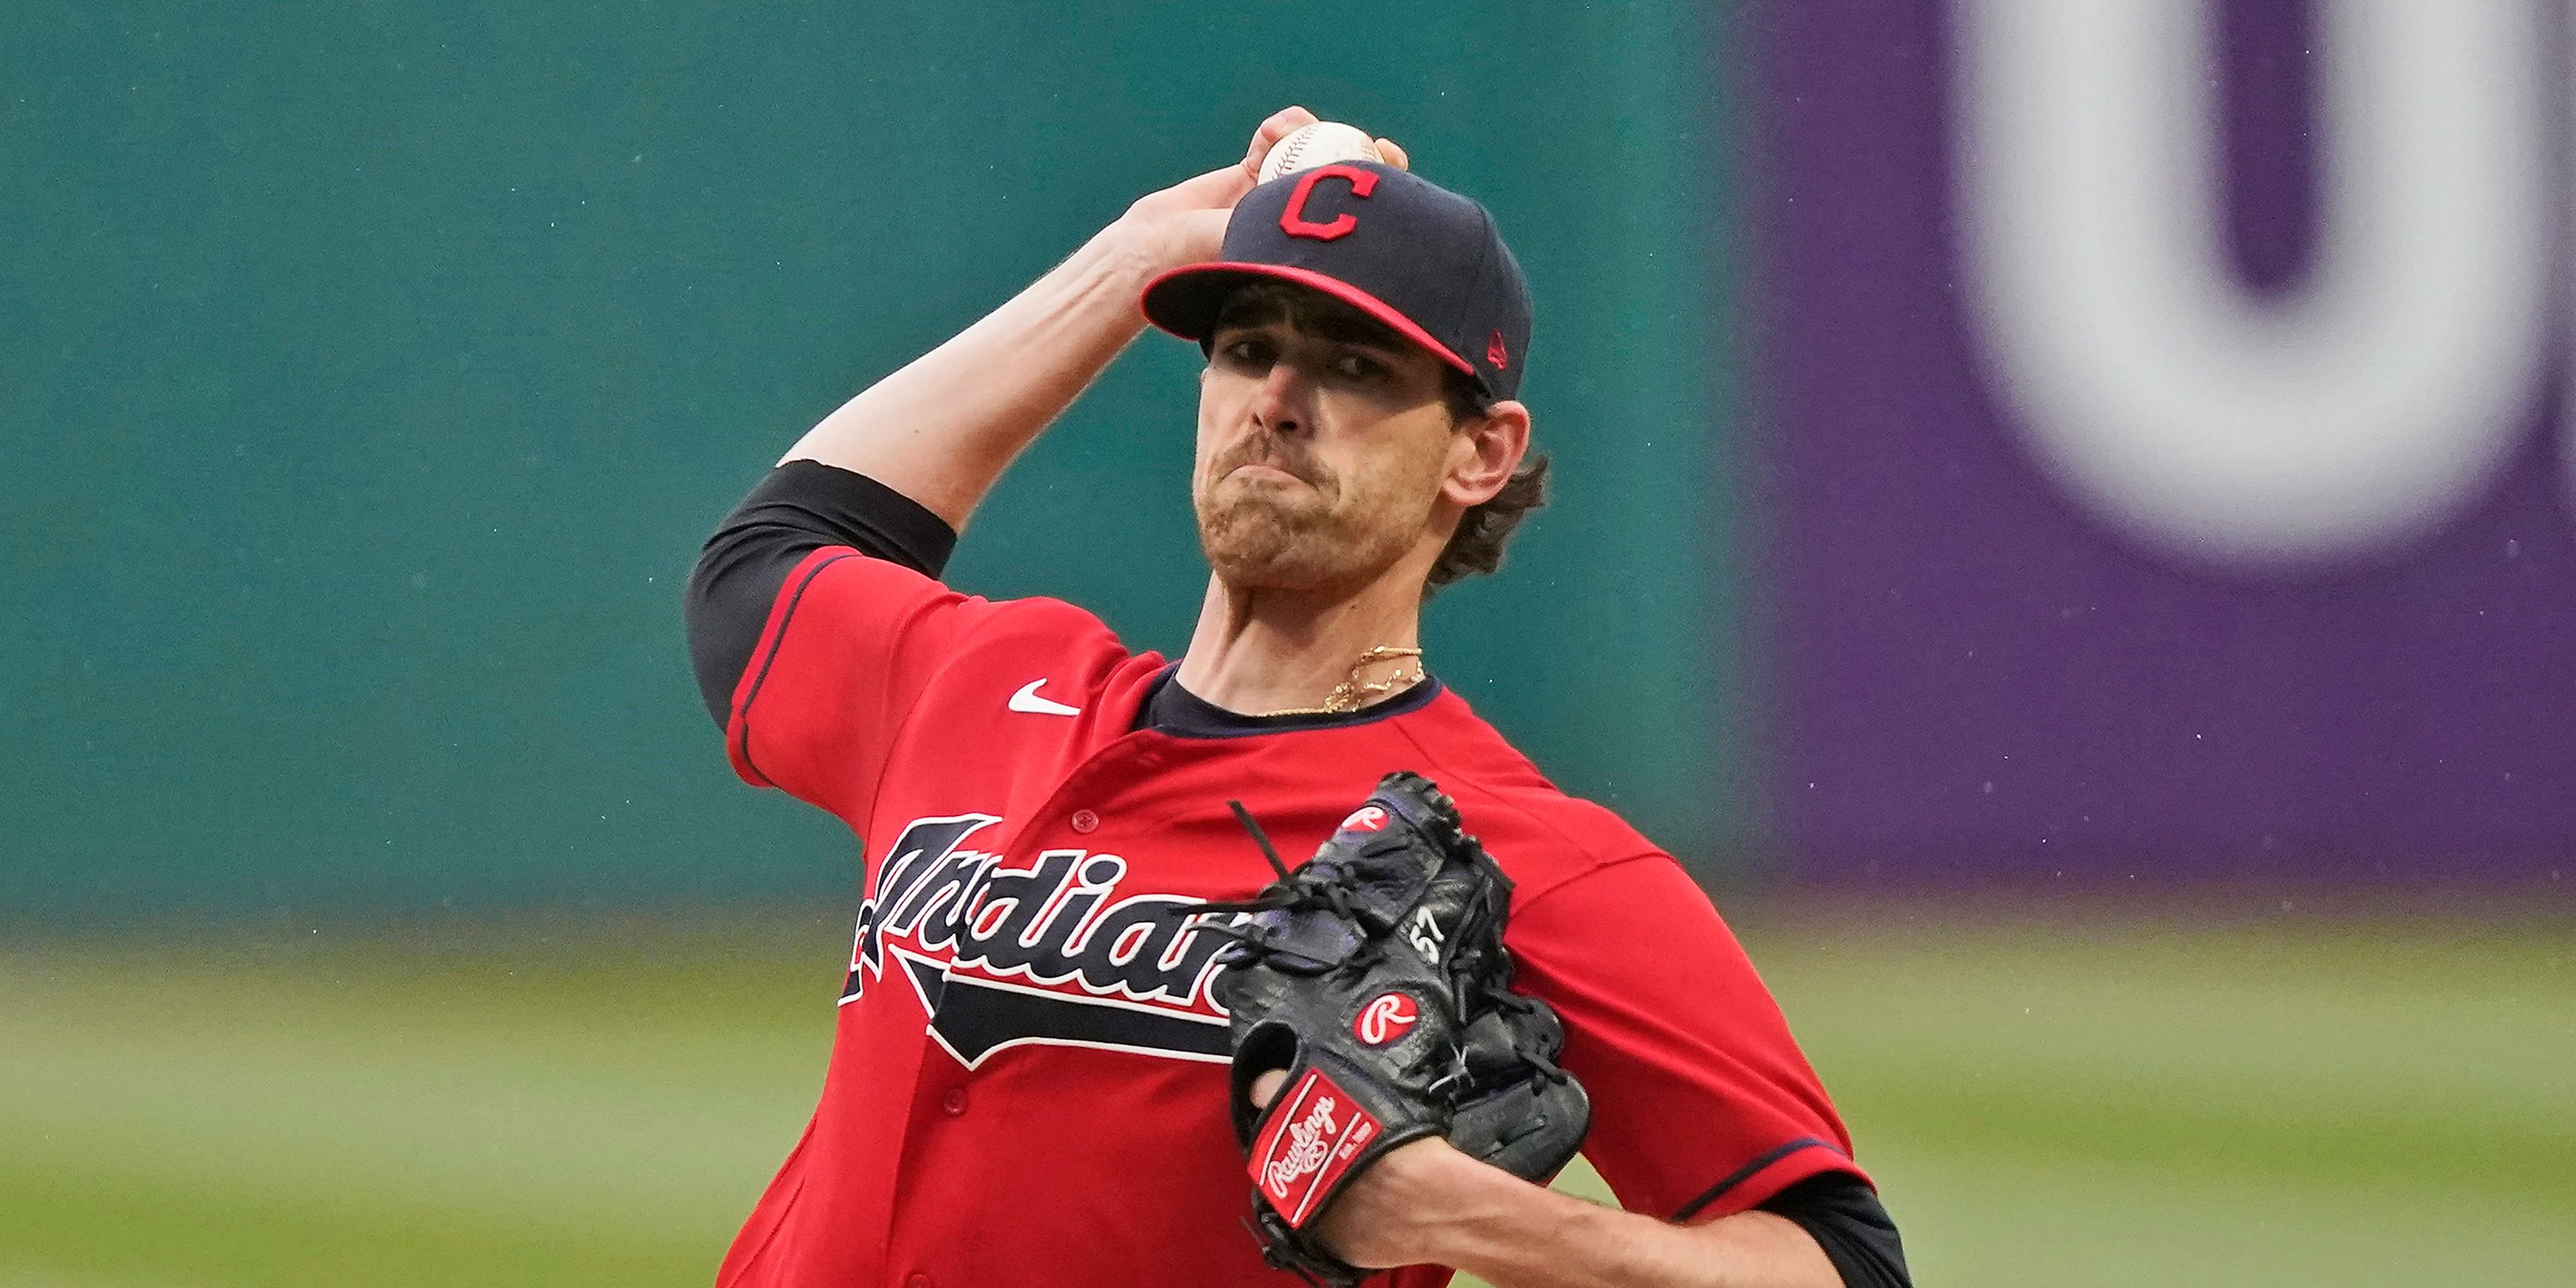 Bieber strikes out 11, sets K record as Indians beat Chisox